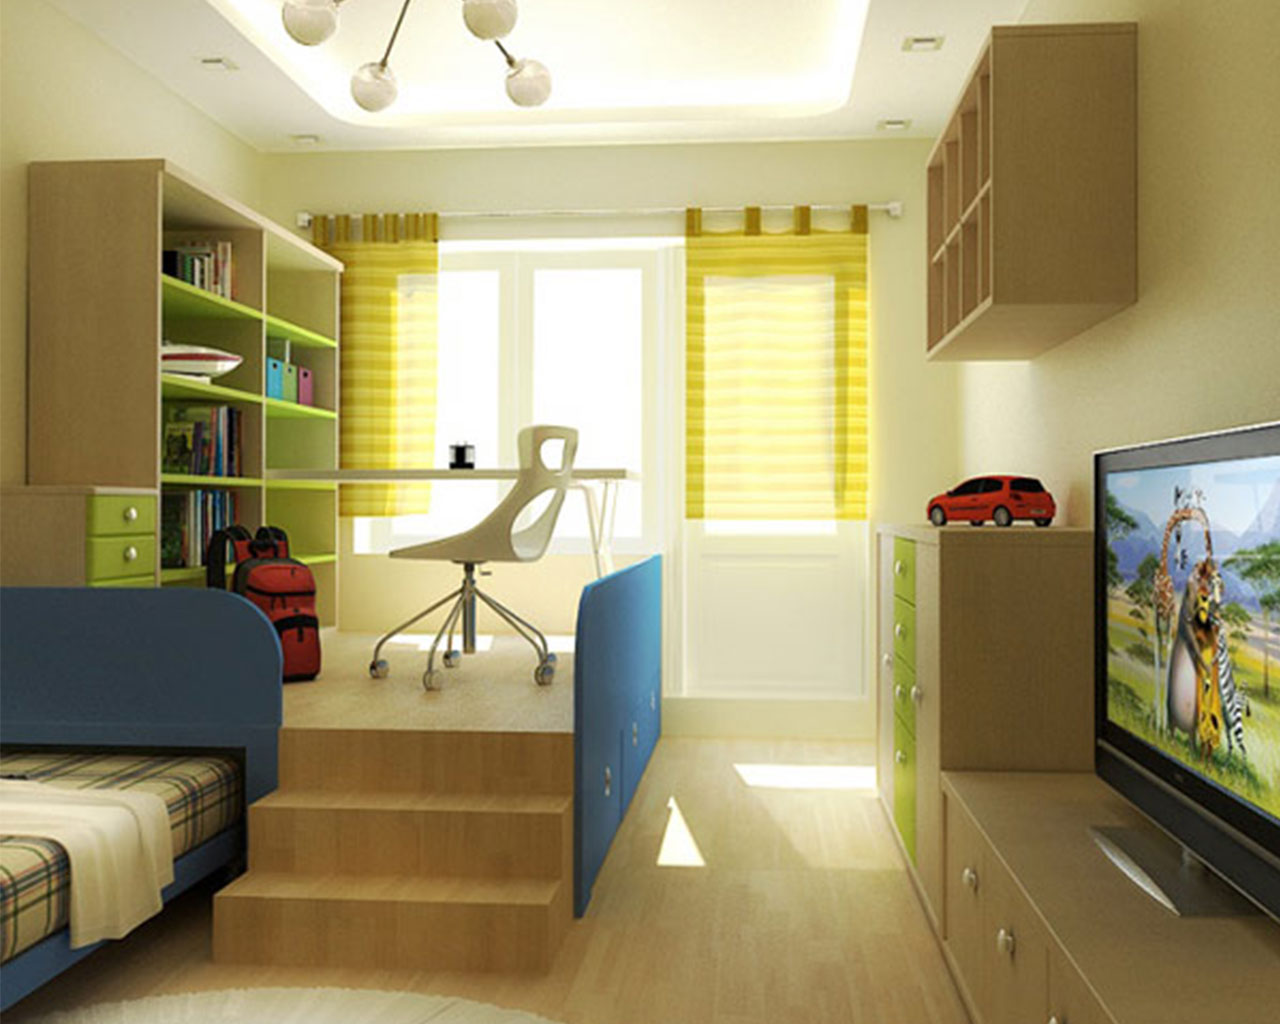 Cool Teenage Bedroom Ideas for Boys on Cool Bedroom Ideas For Small Rooms  id=42480